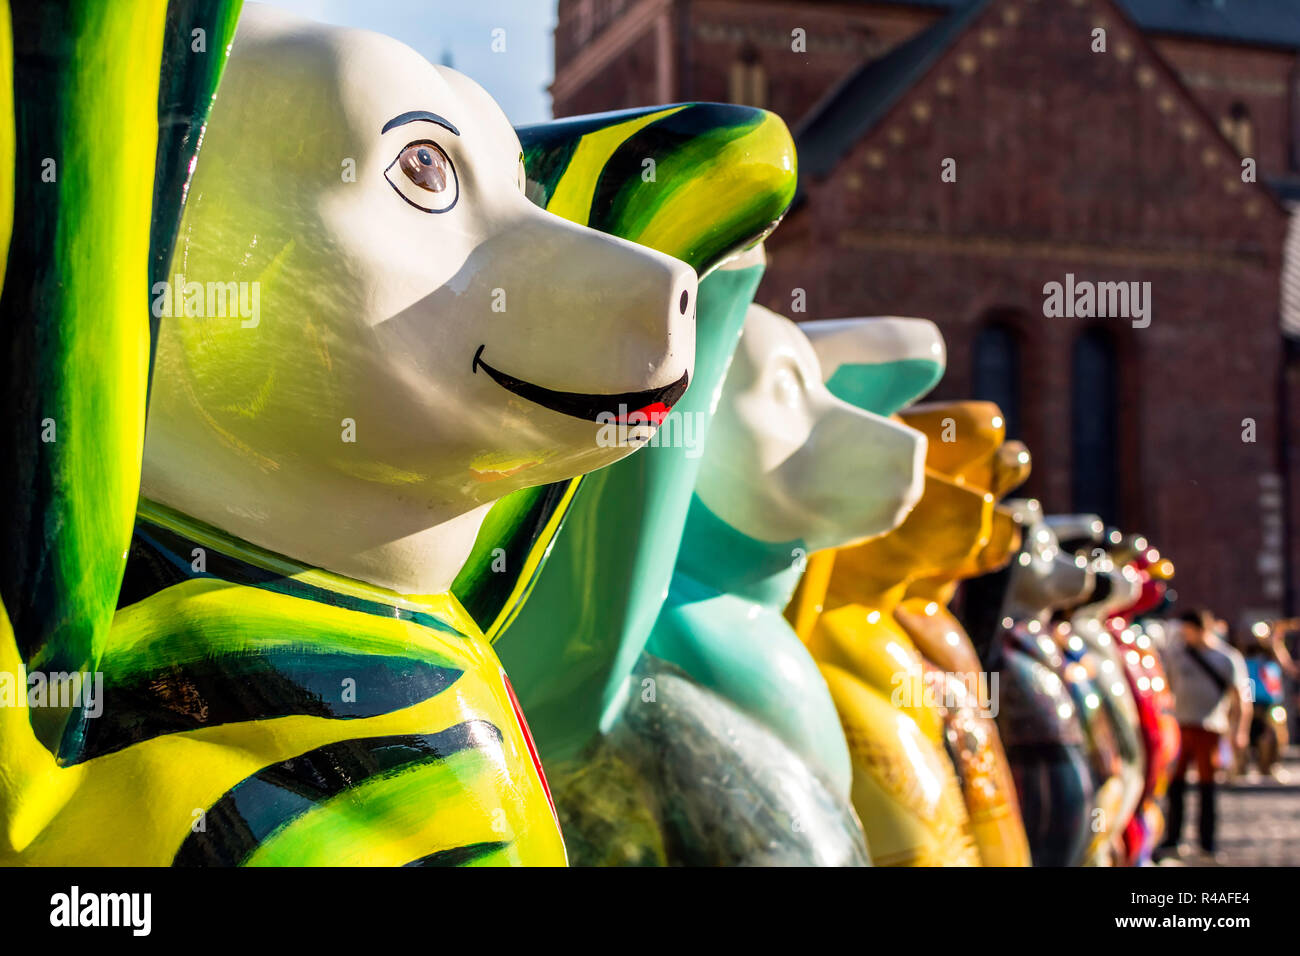 Colorful bears at United Buddy Bears international art exhibition. Circle of Bears was created to make people think about tolerance. - Stock Image